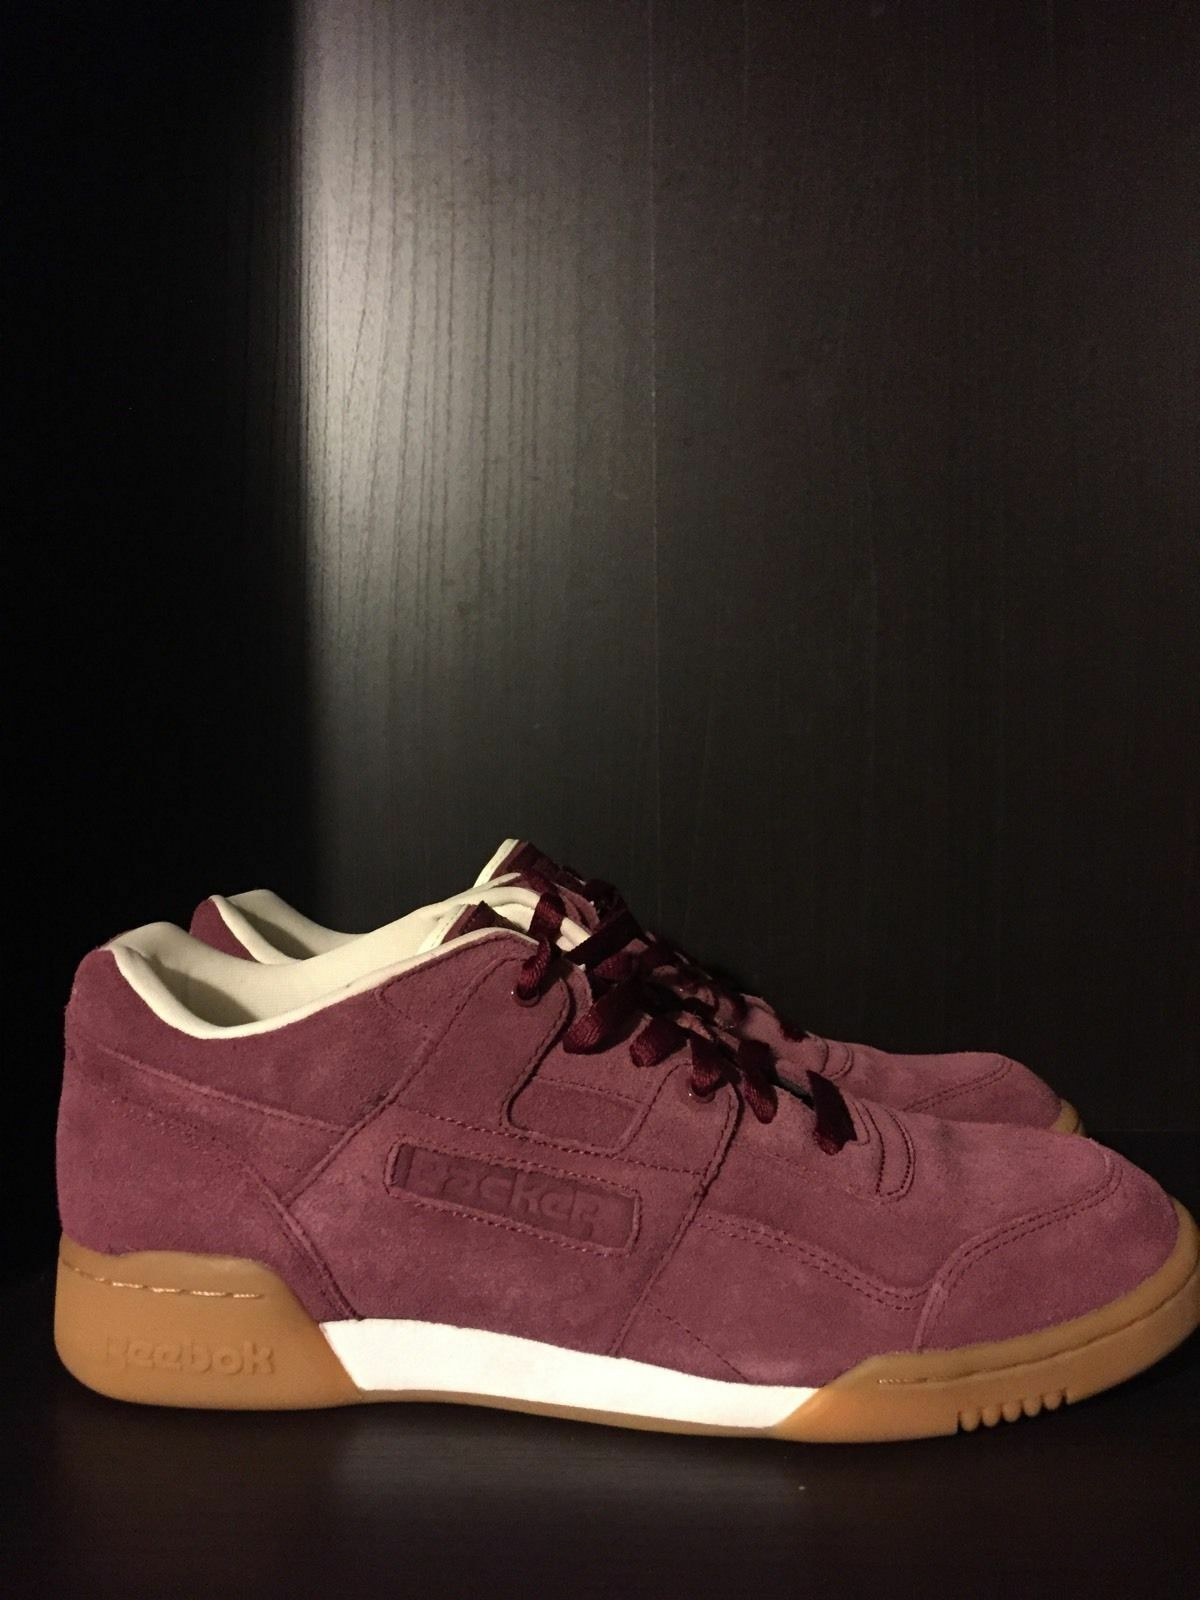 Packer x Reebok Workout - 25th Anniversary - US Dimensione 11